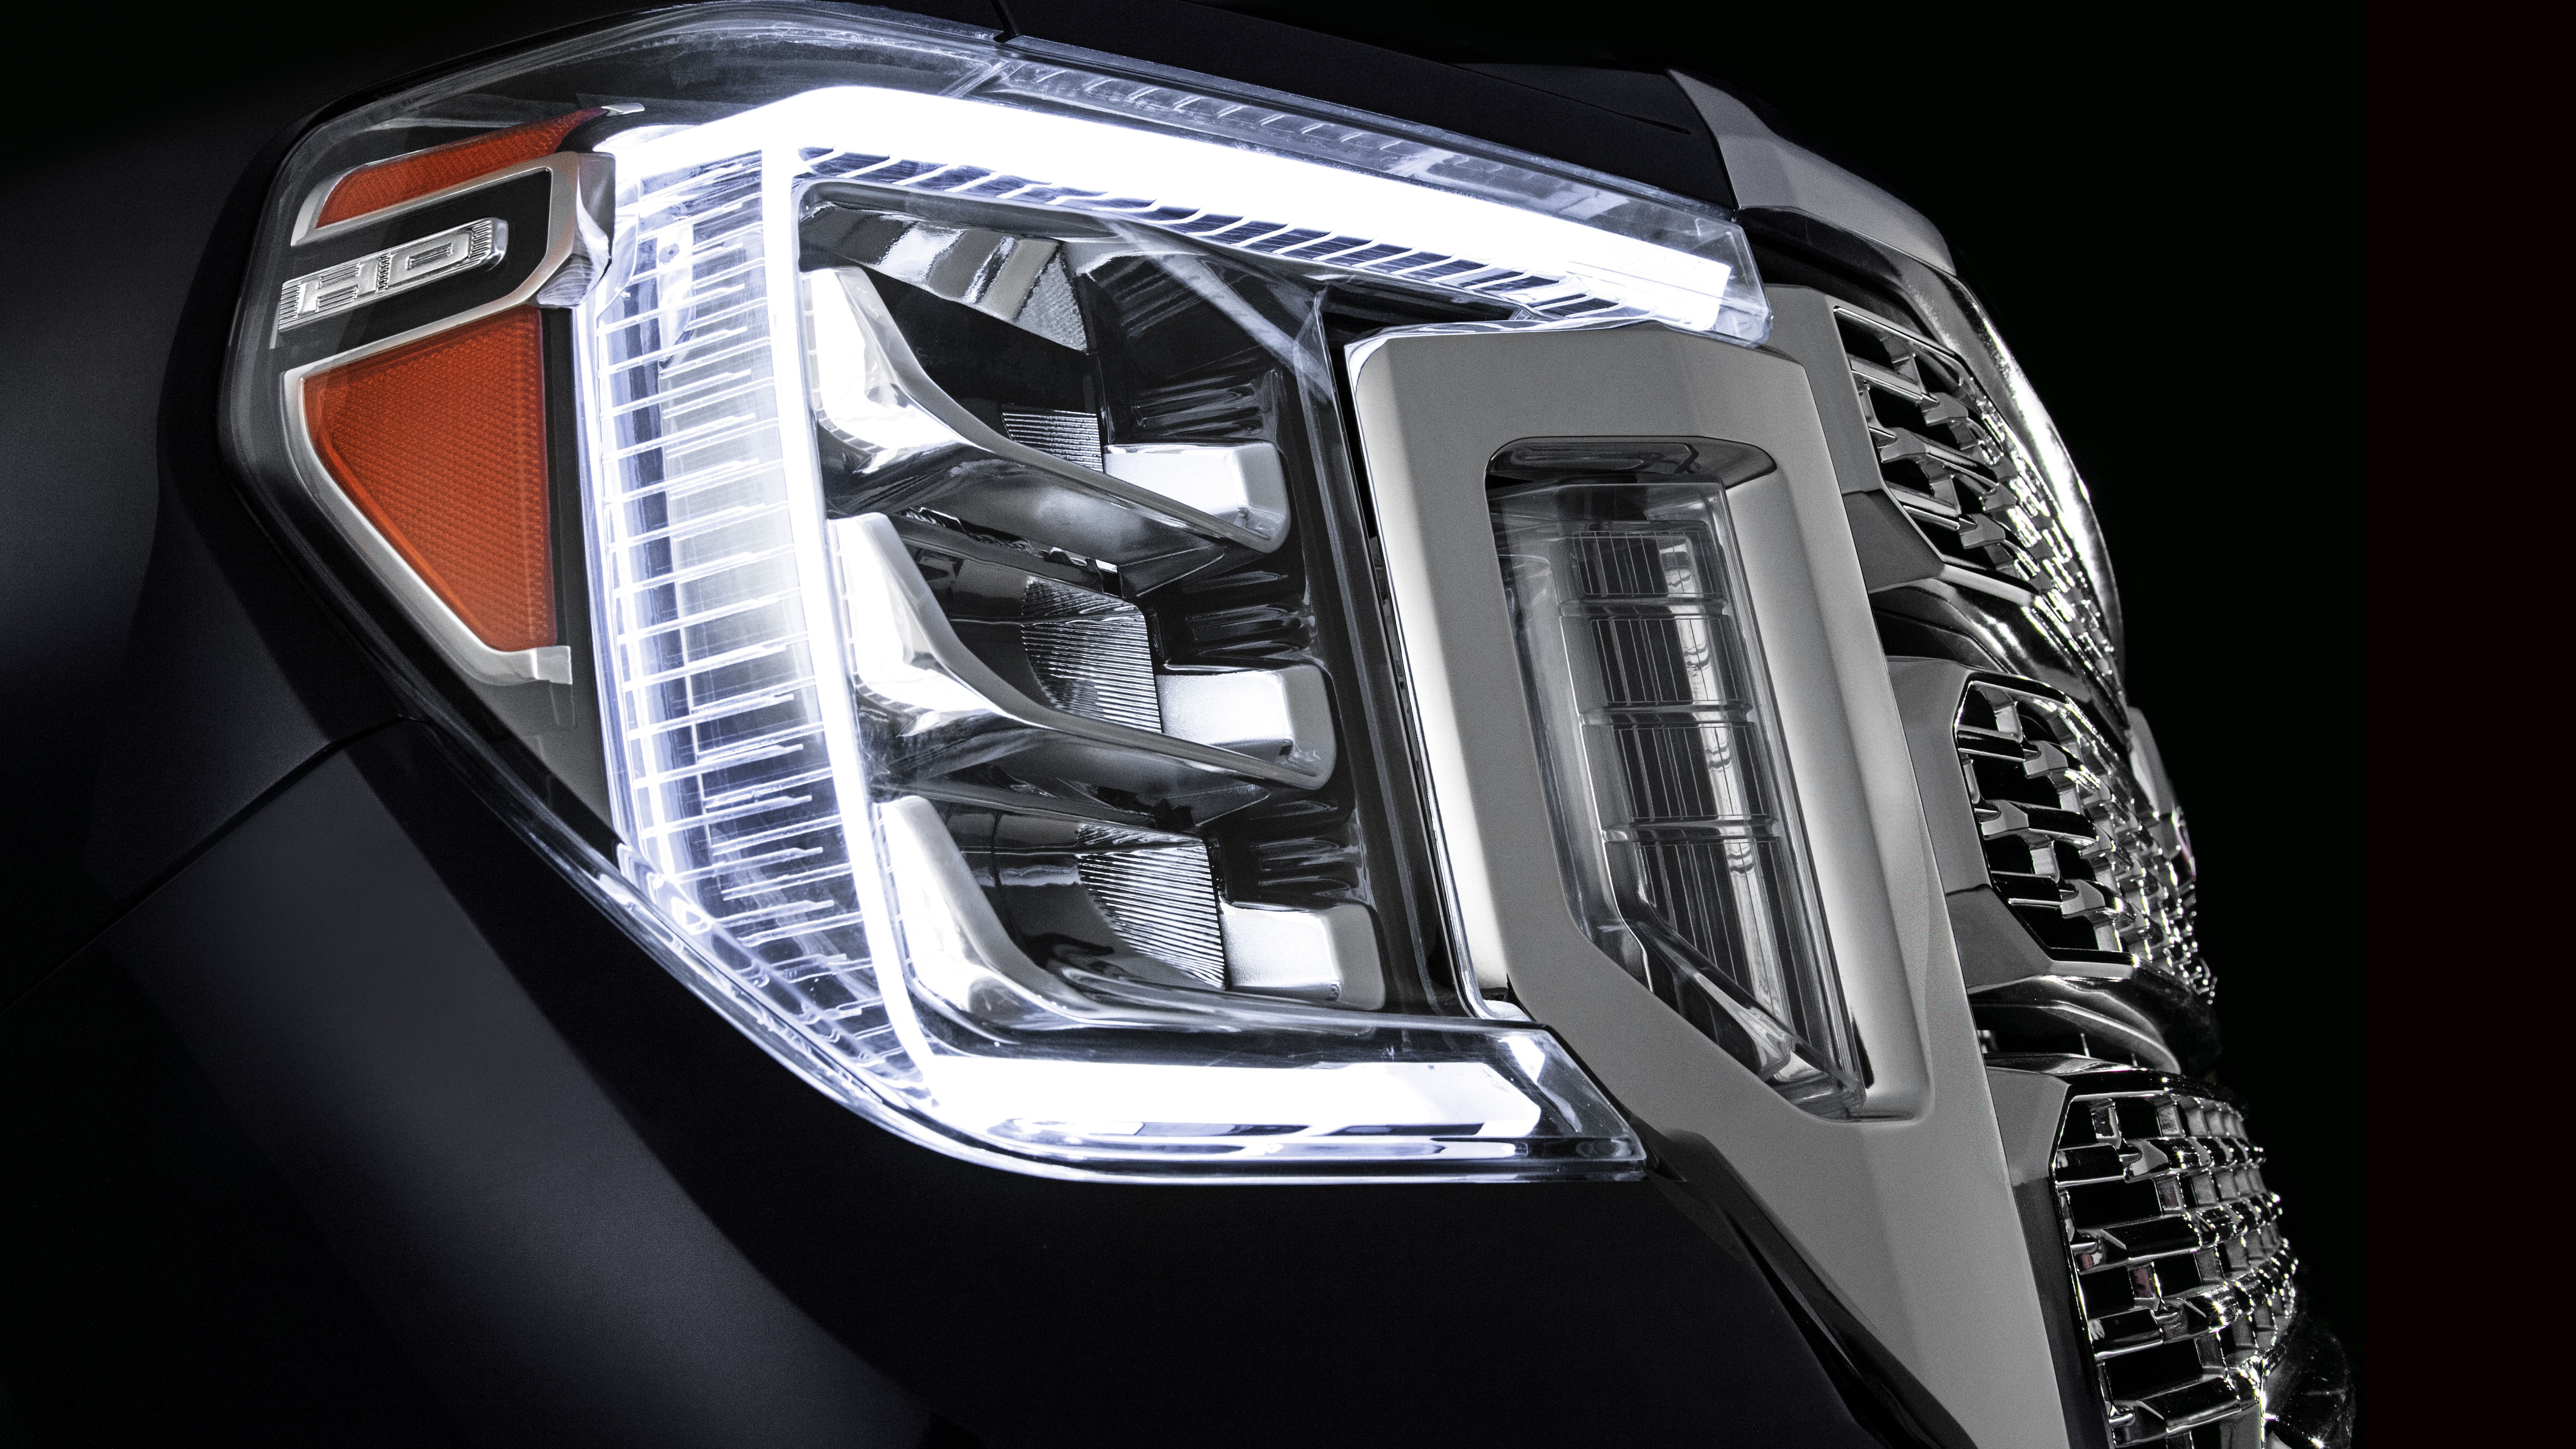 BMW 228I Xdrive >> Look, It's the 2020 GMC Sierra Denali HD Grille (Of Course It's Huge and Shiny) | Automobile ...